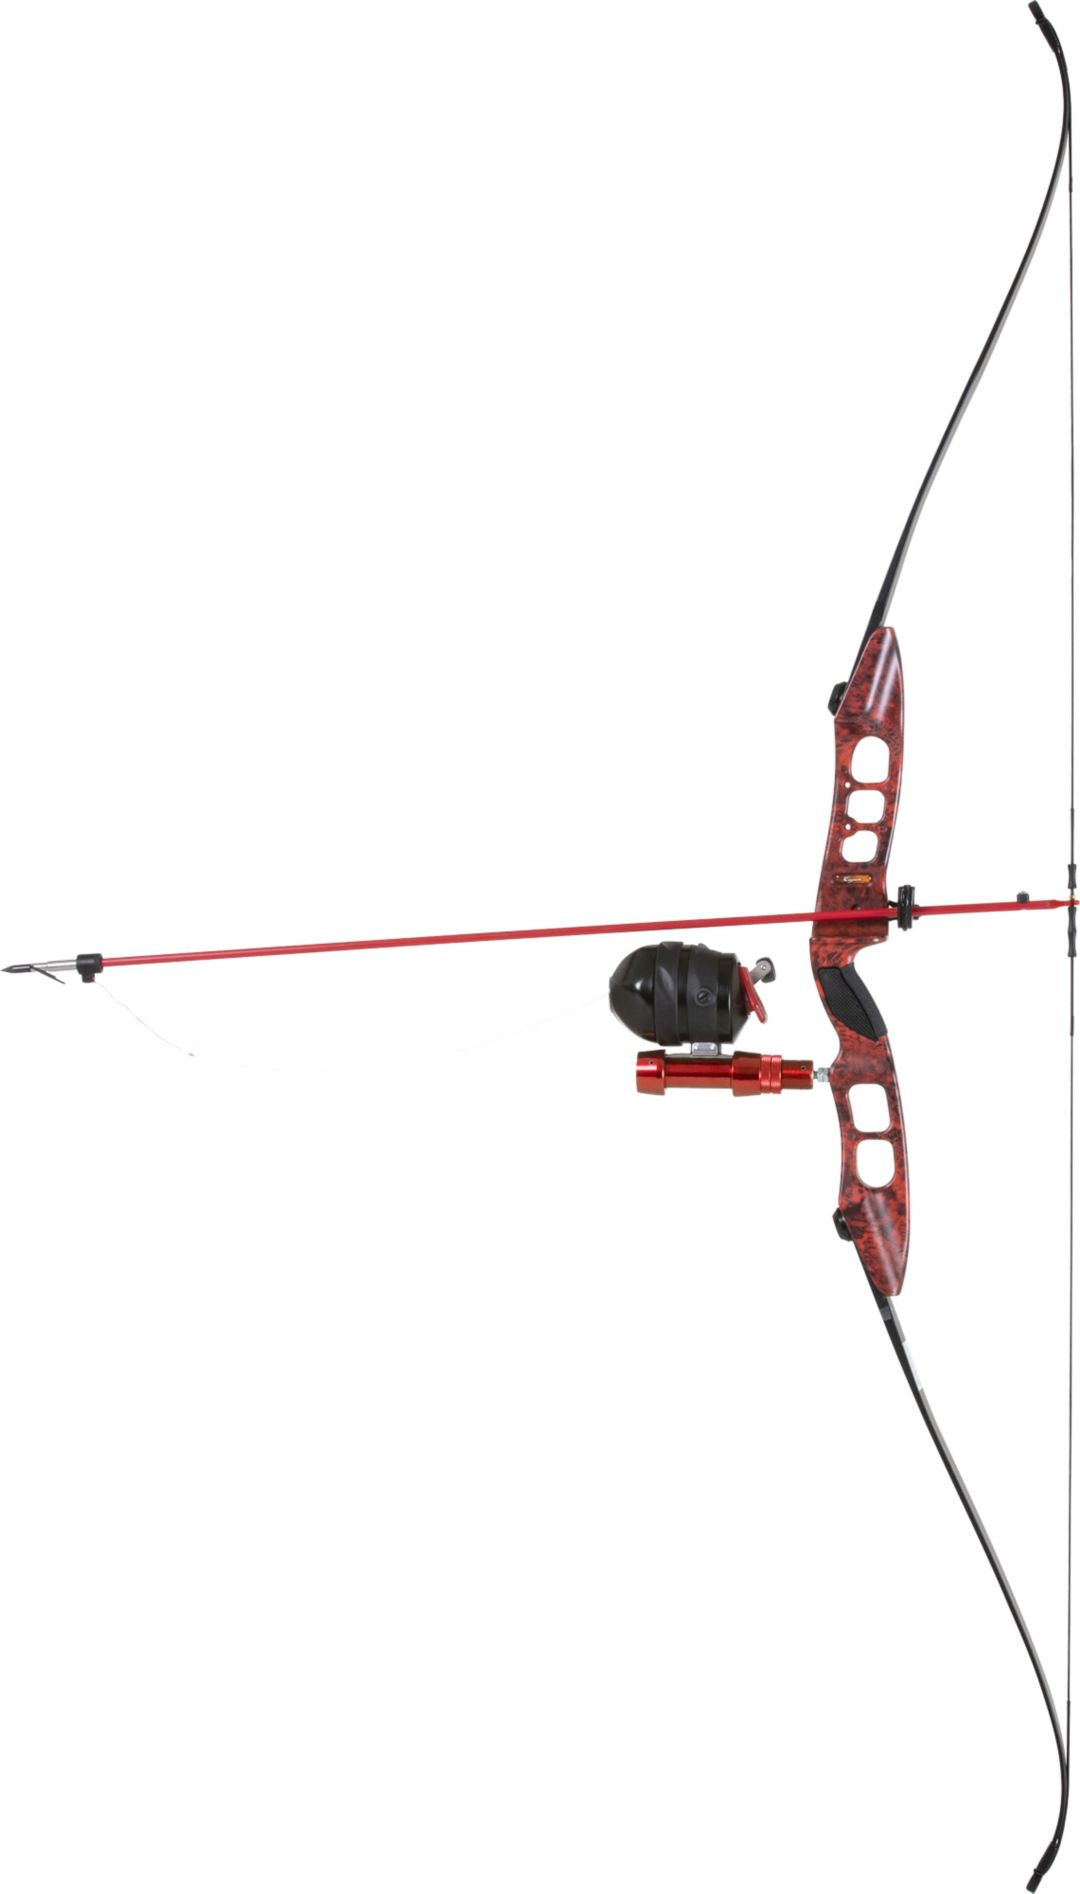 Cajun Bowfishing Fish Stick Pro RTF Bowfishing Bow Package